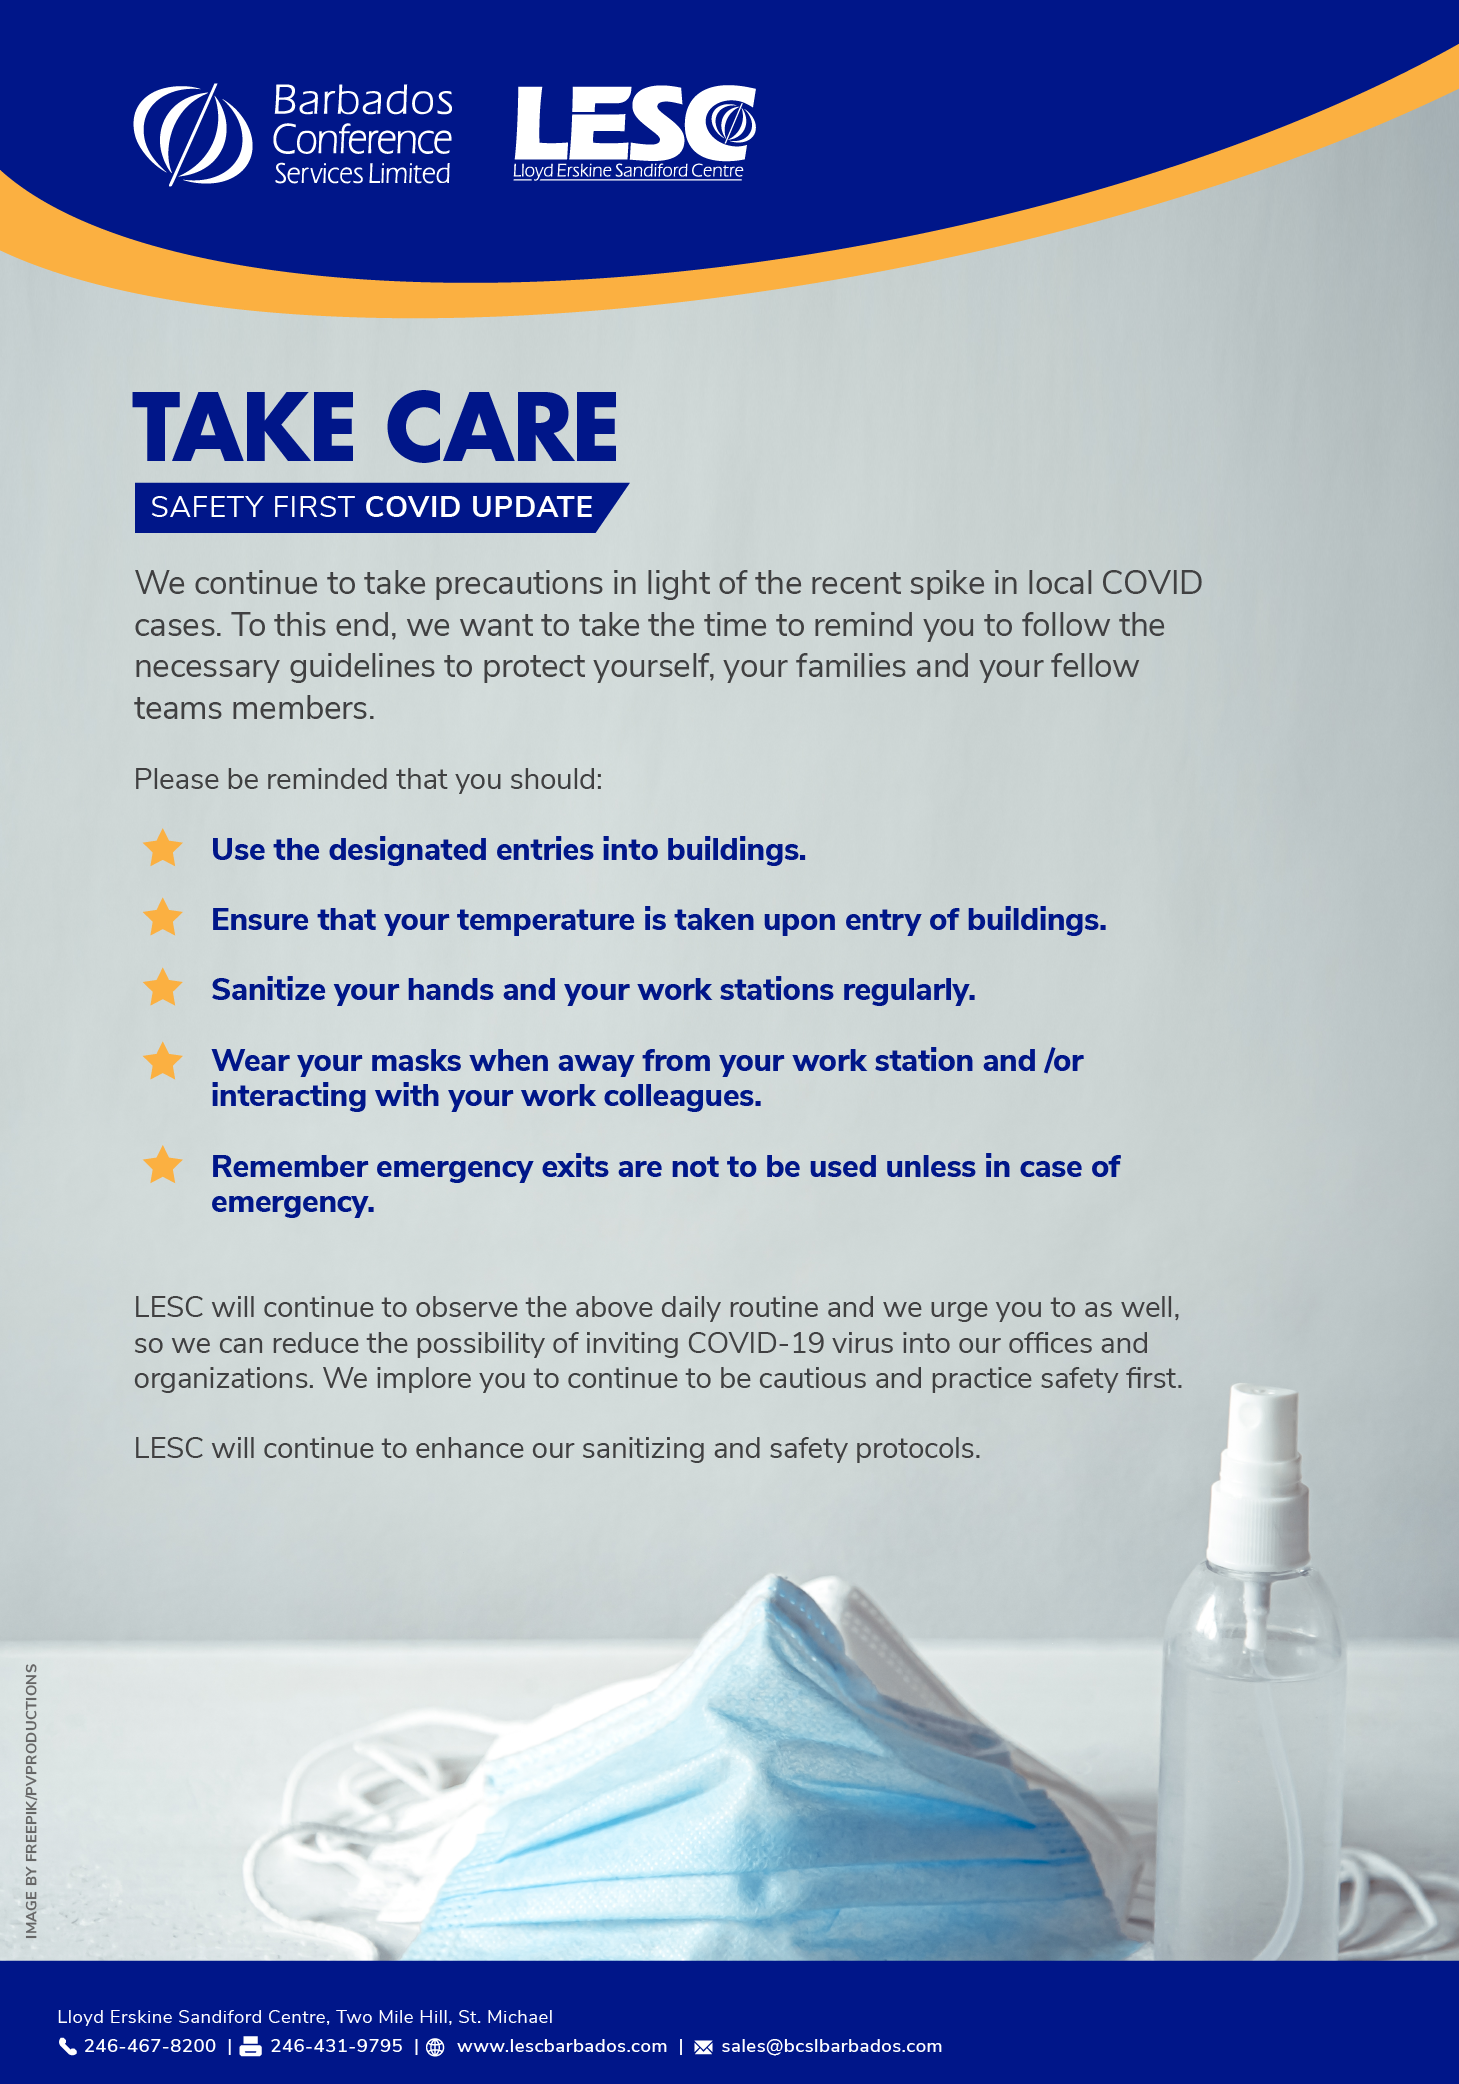 TAKE CARE - Safety First COVID Update